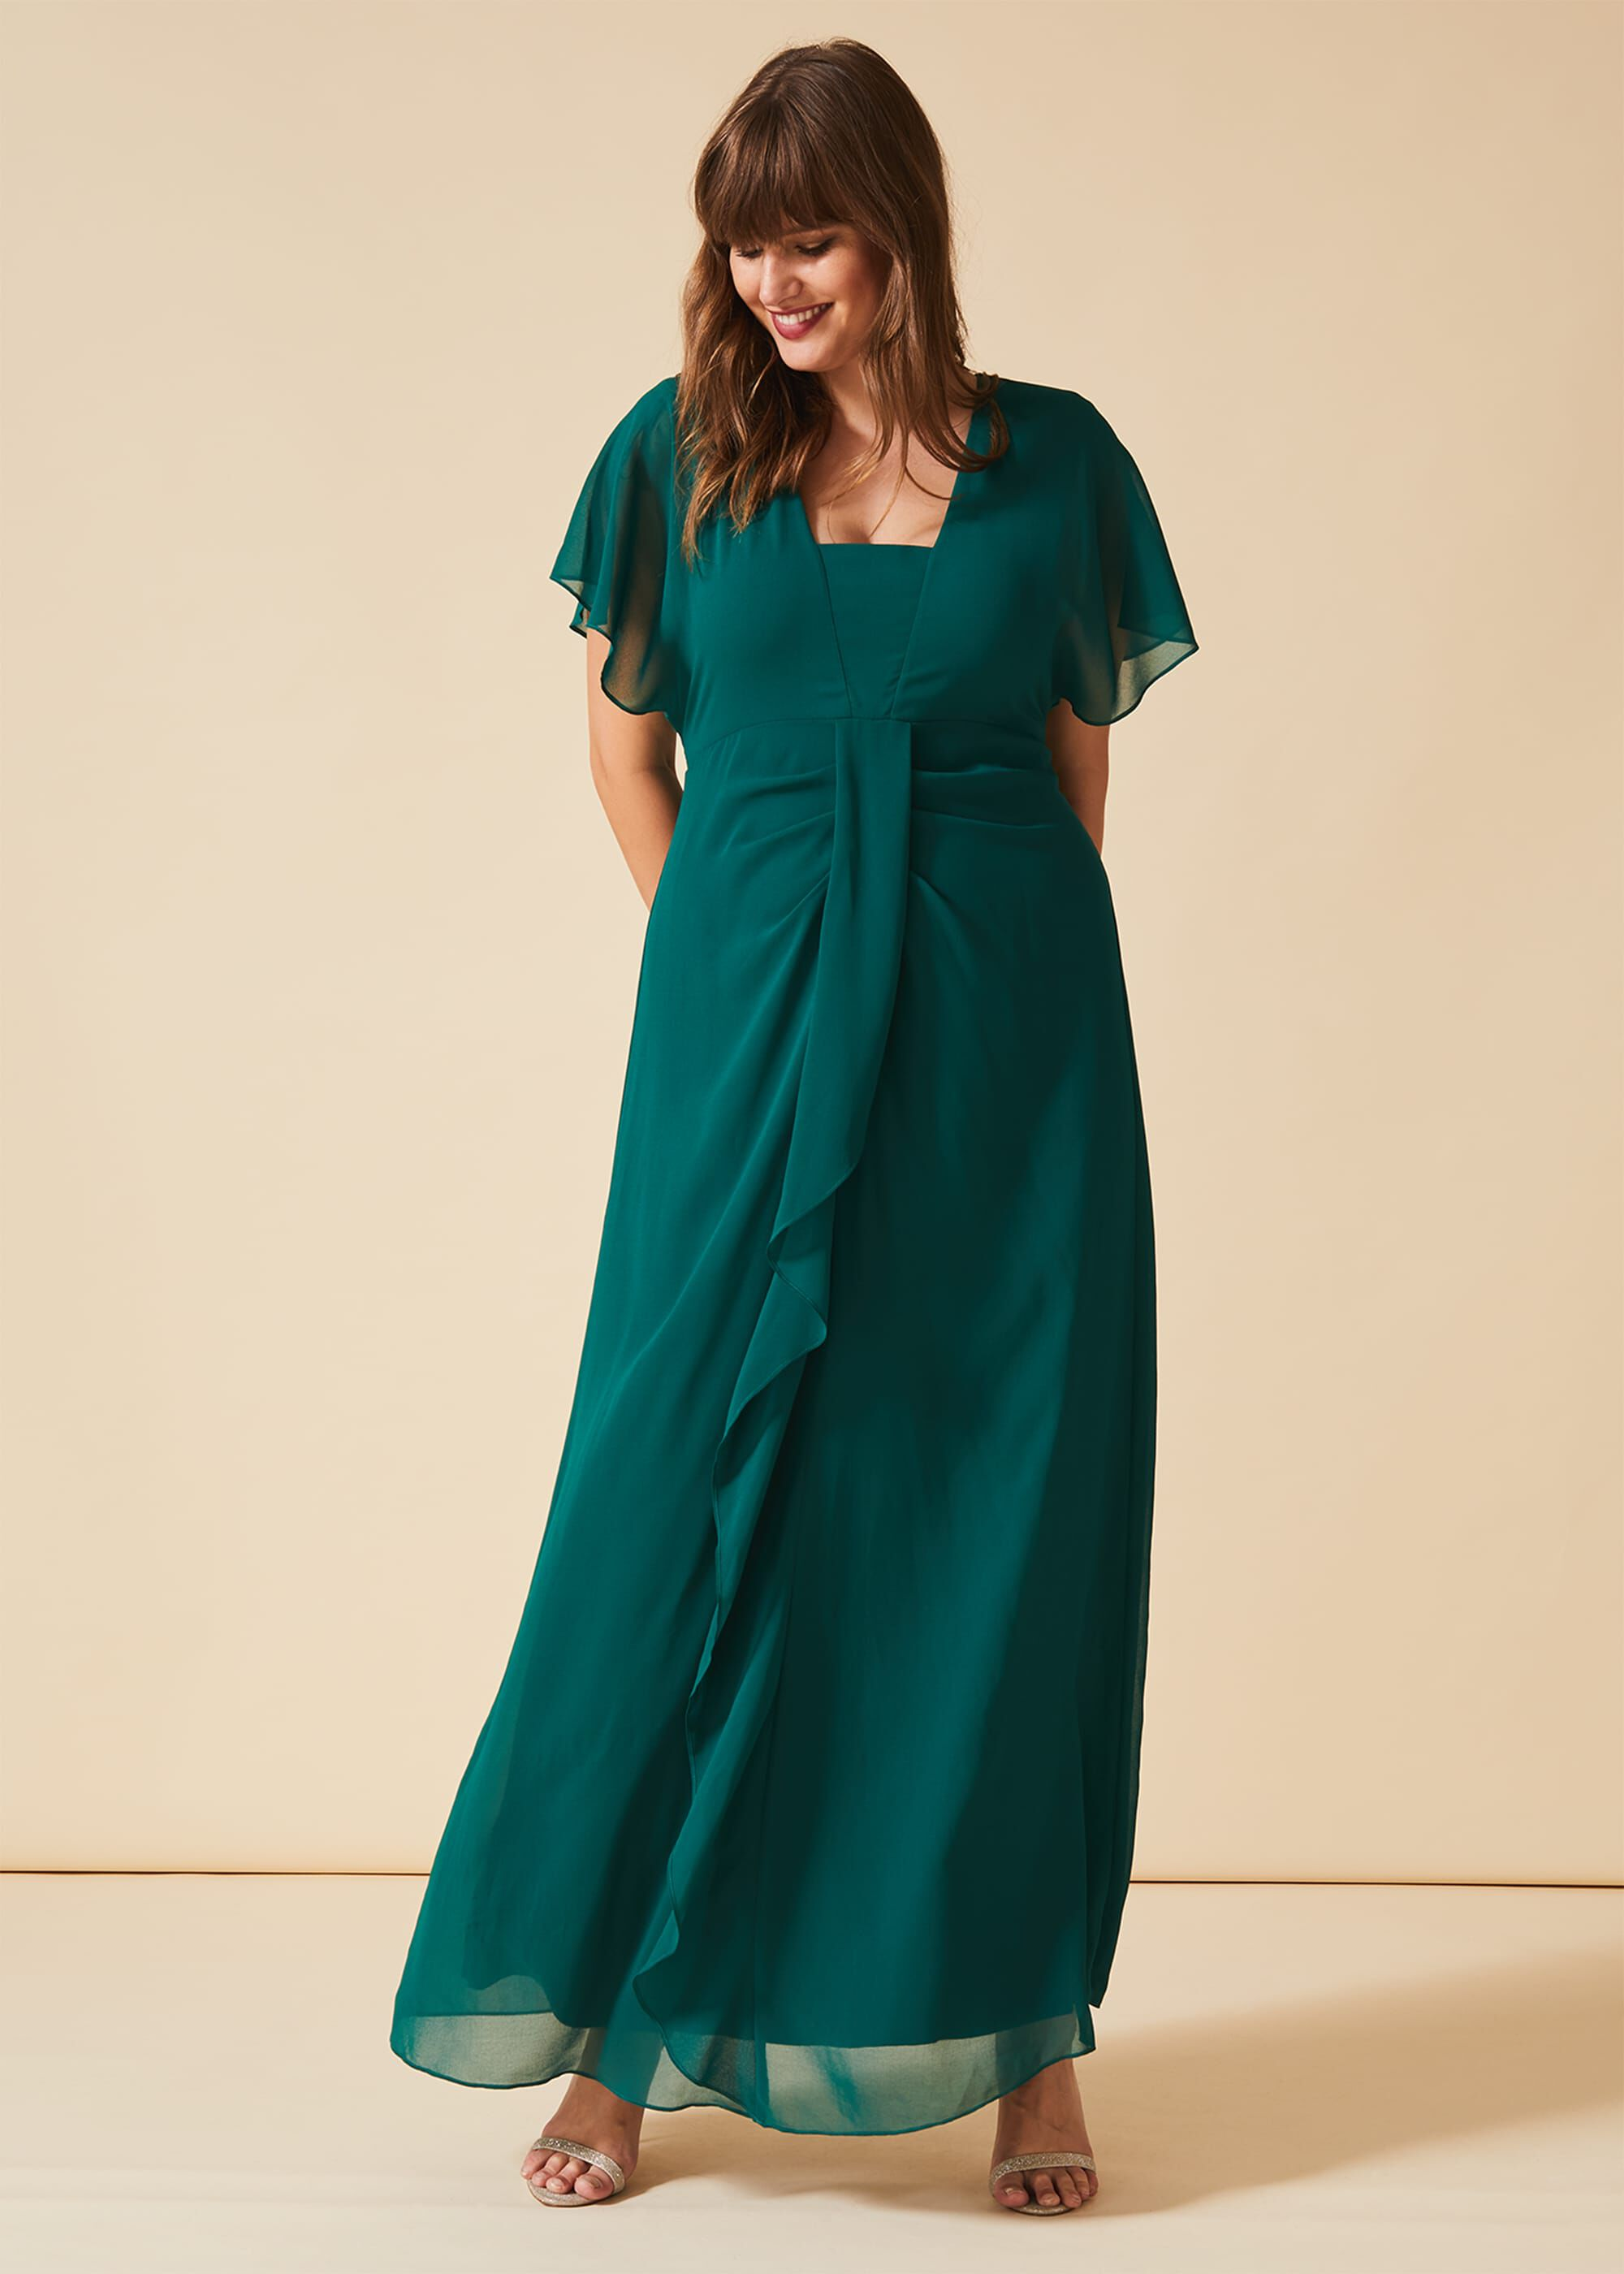 Studio 8 Olympia Maxi Dress, Green, Maxi, Occasion Dress